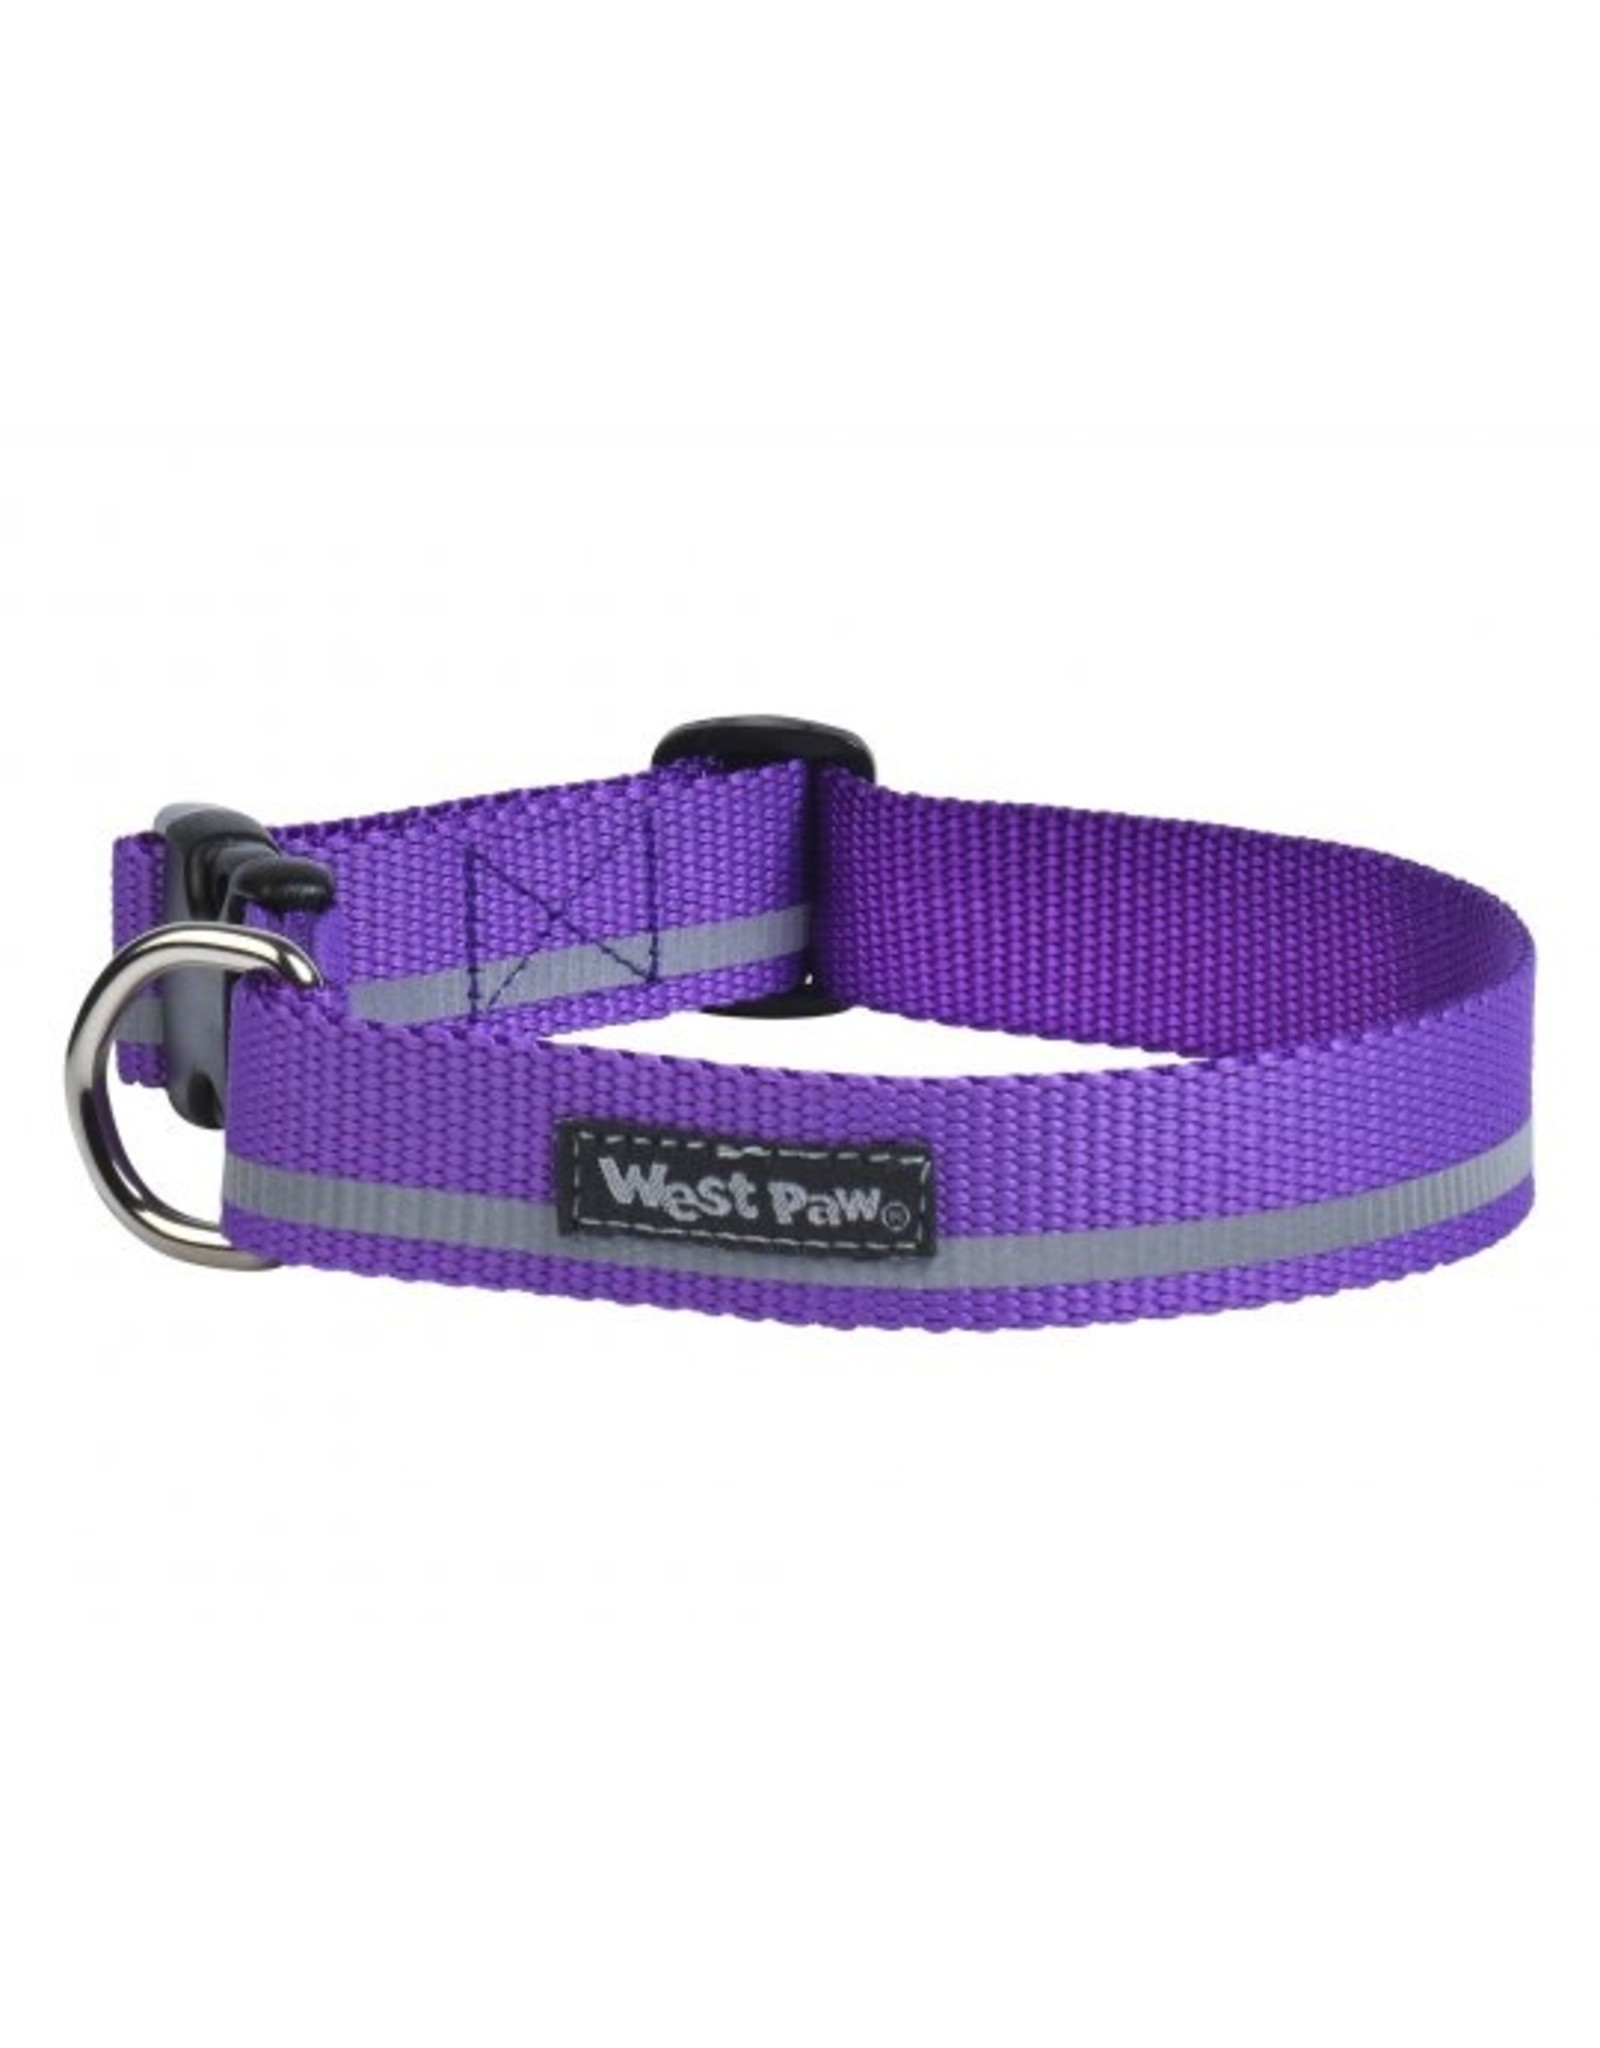 West Paw Designs Westpaw: Strolls Collar Medium Dewberry Reflective